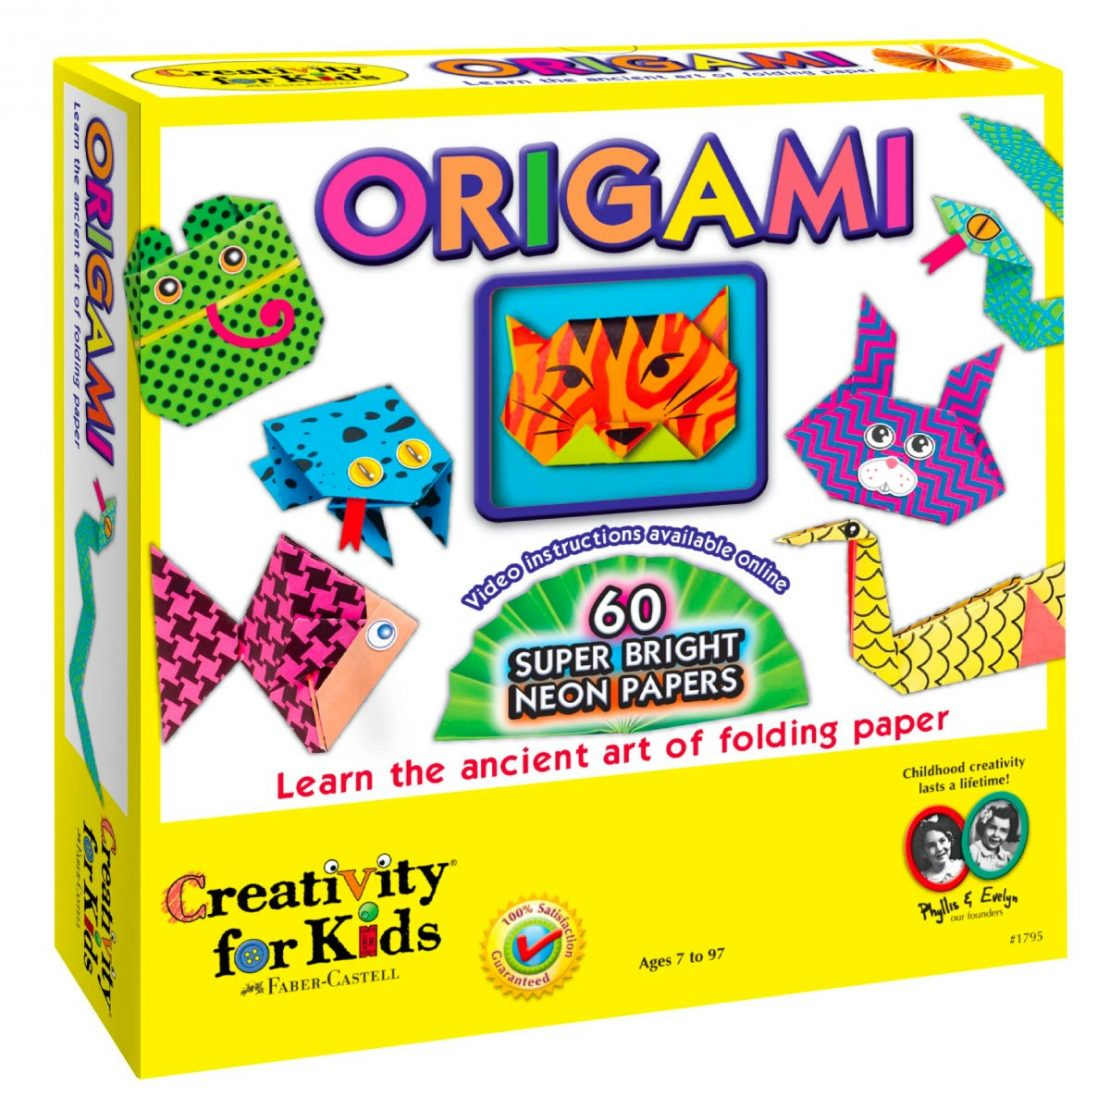 Origami Kit from Creativity for Kids